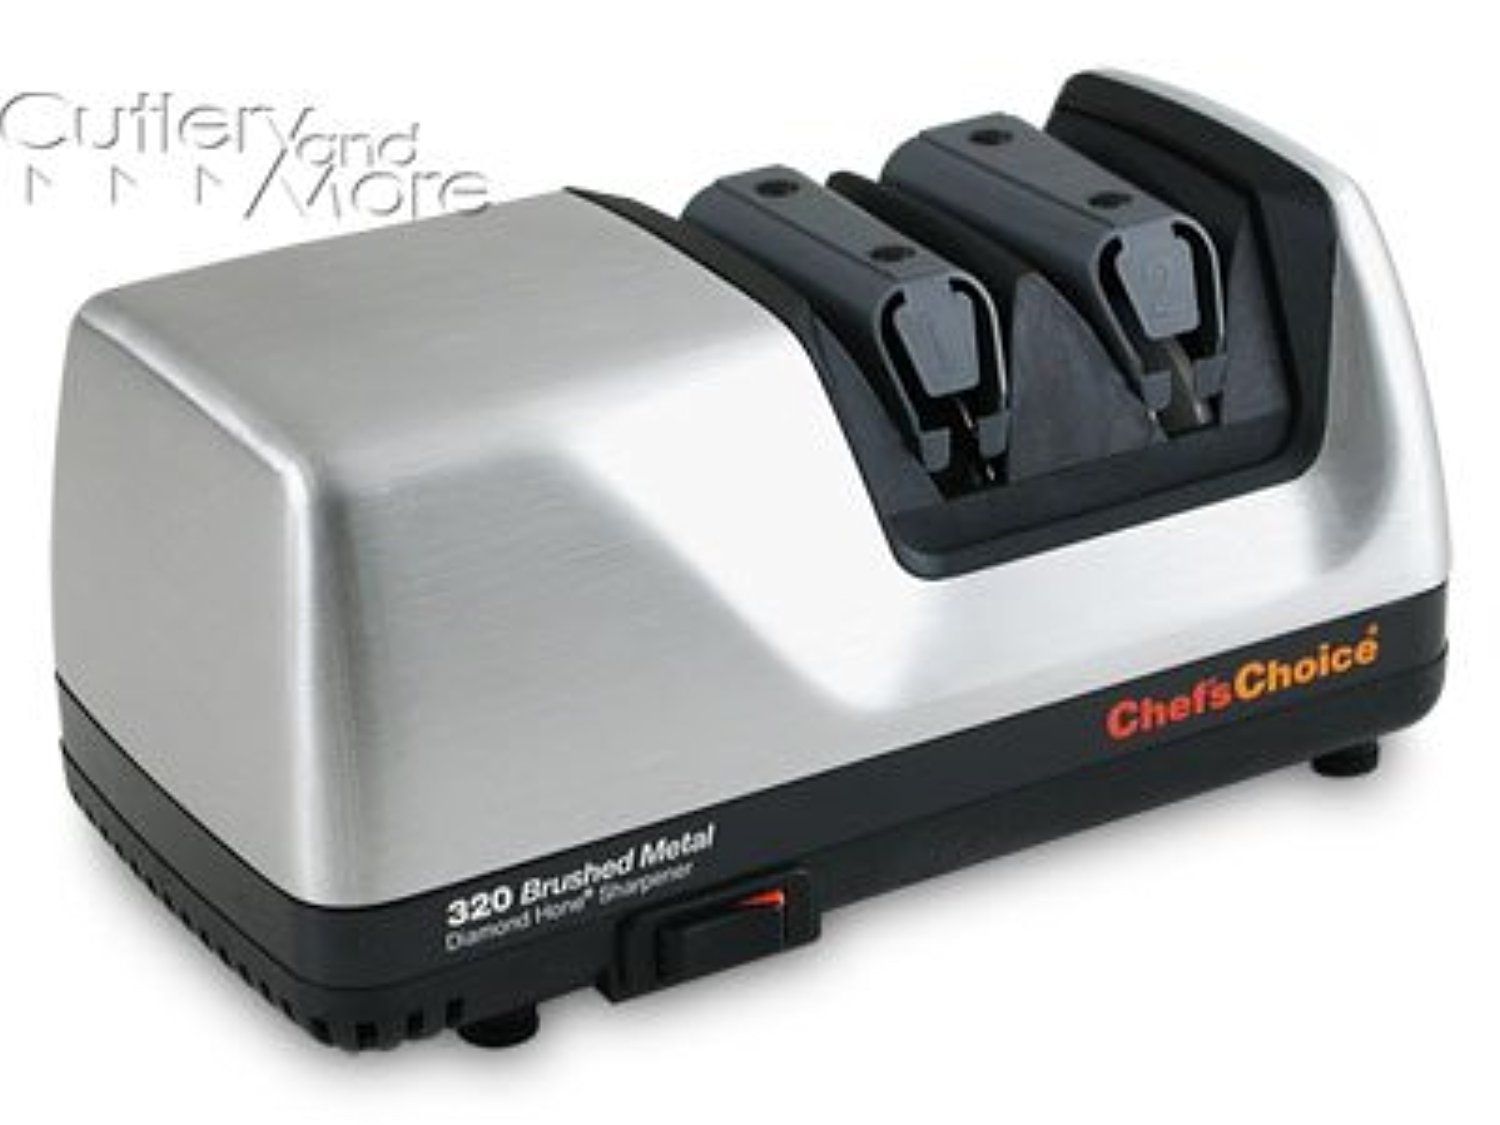 Chef's Choice 320 Diamond Hone 2-Stage Electric Knife Sharpener, Brushed Metal by Chef's Choice